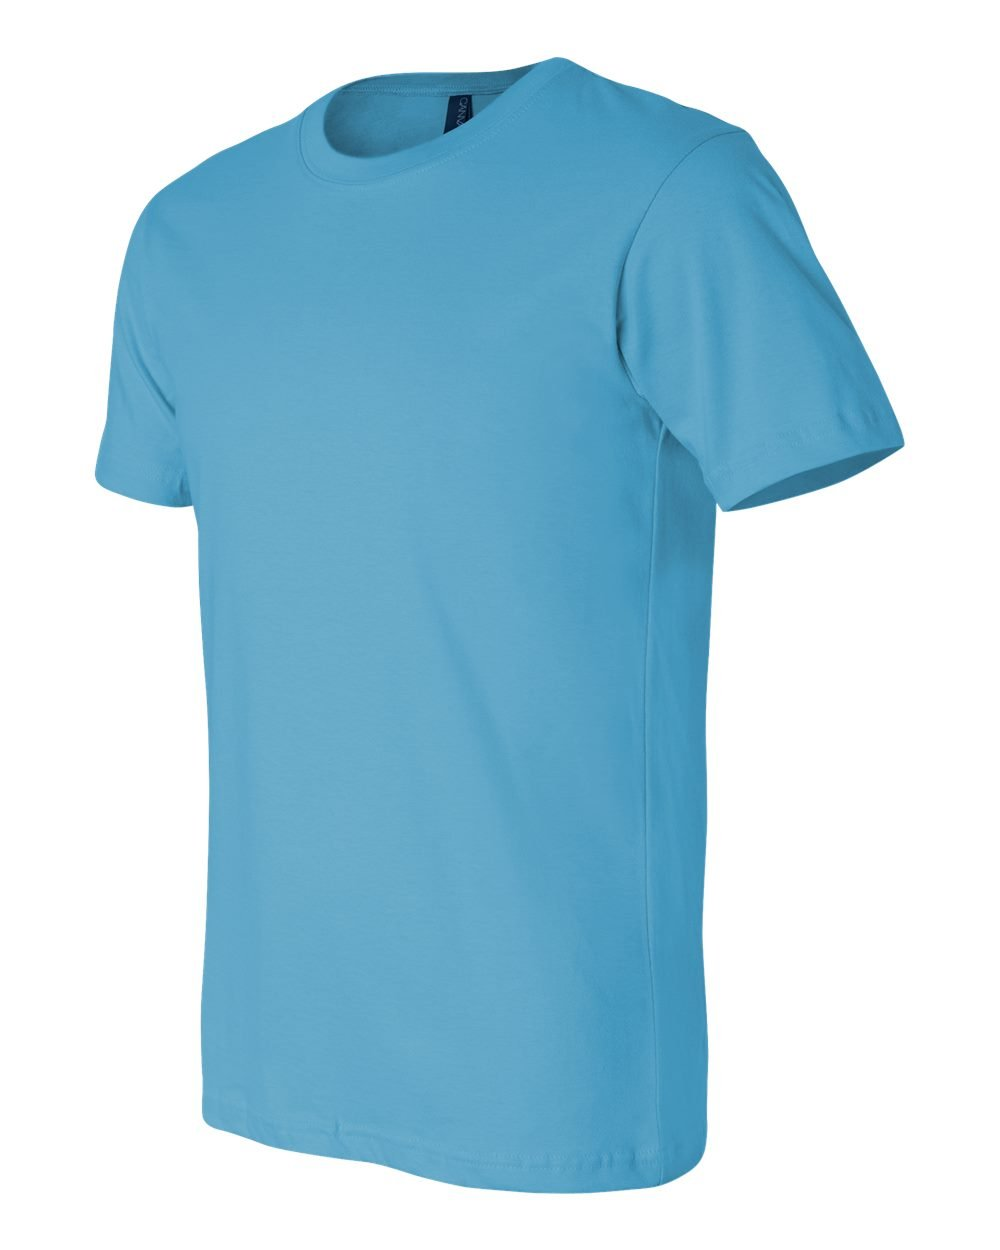 TURQUOISE 2XL Bella Canvas Unisex Jersey Short-Sleeve T-Shirt